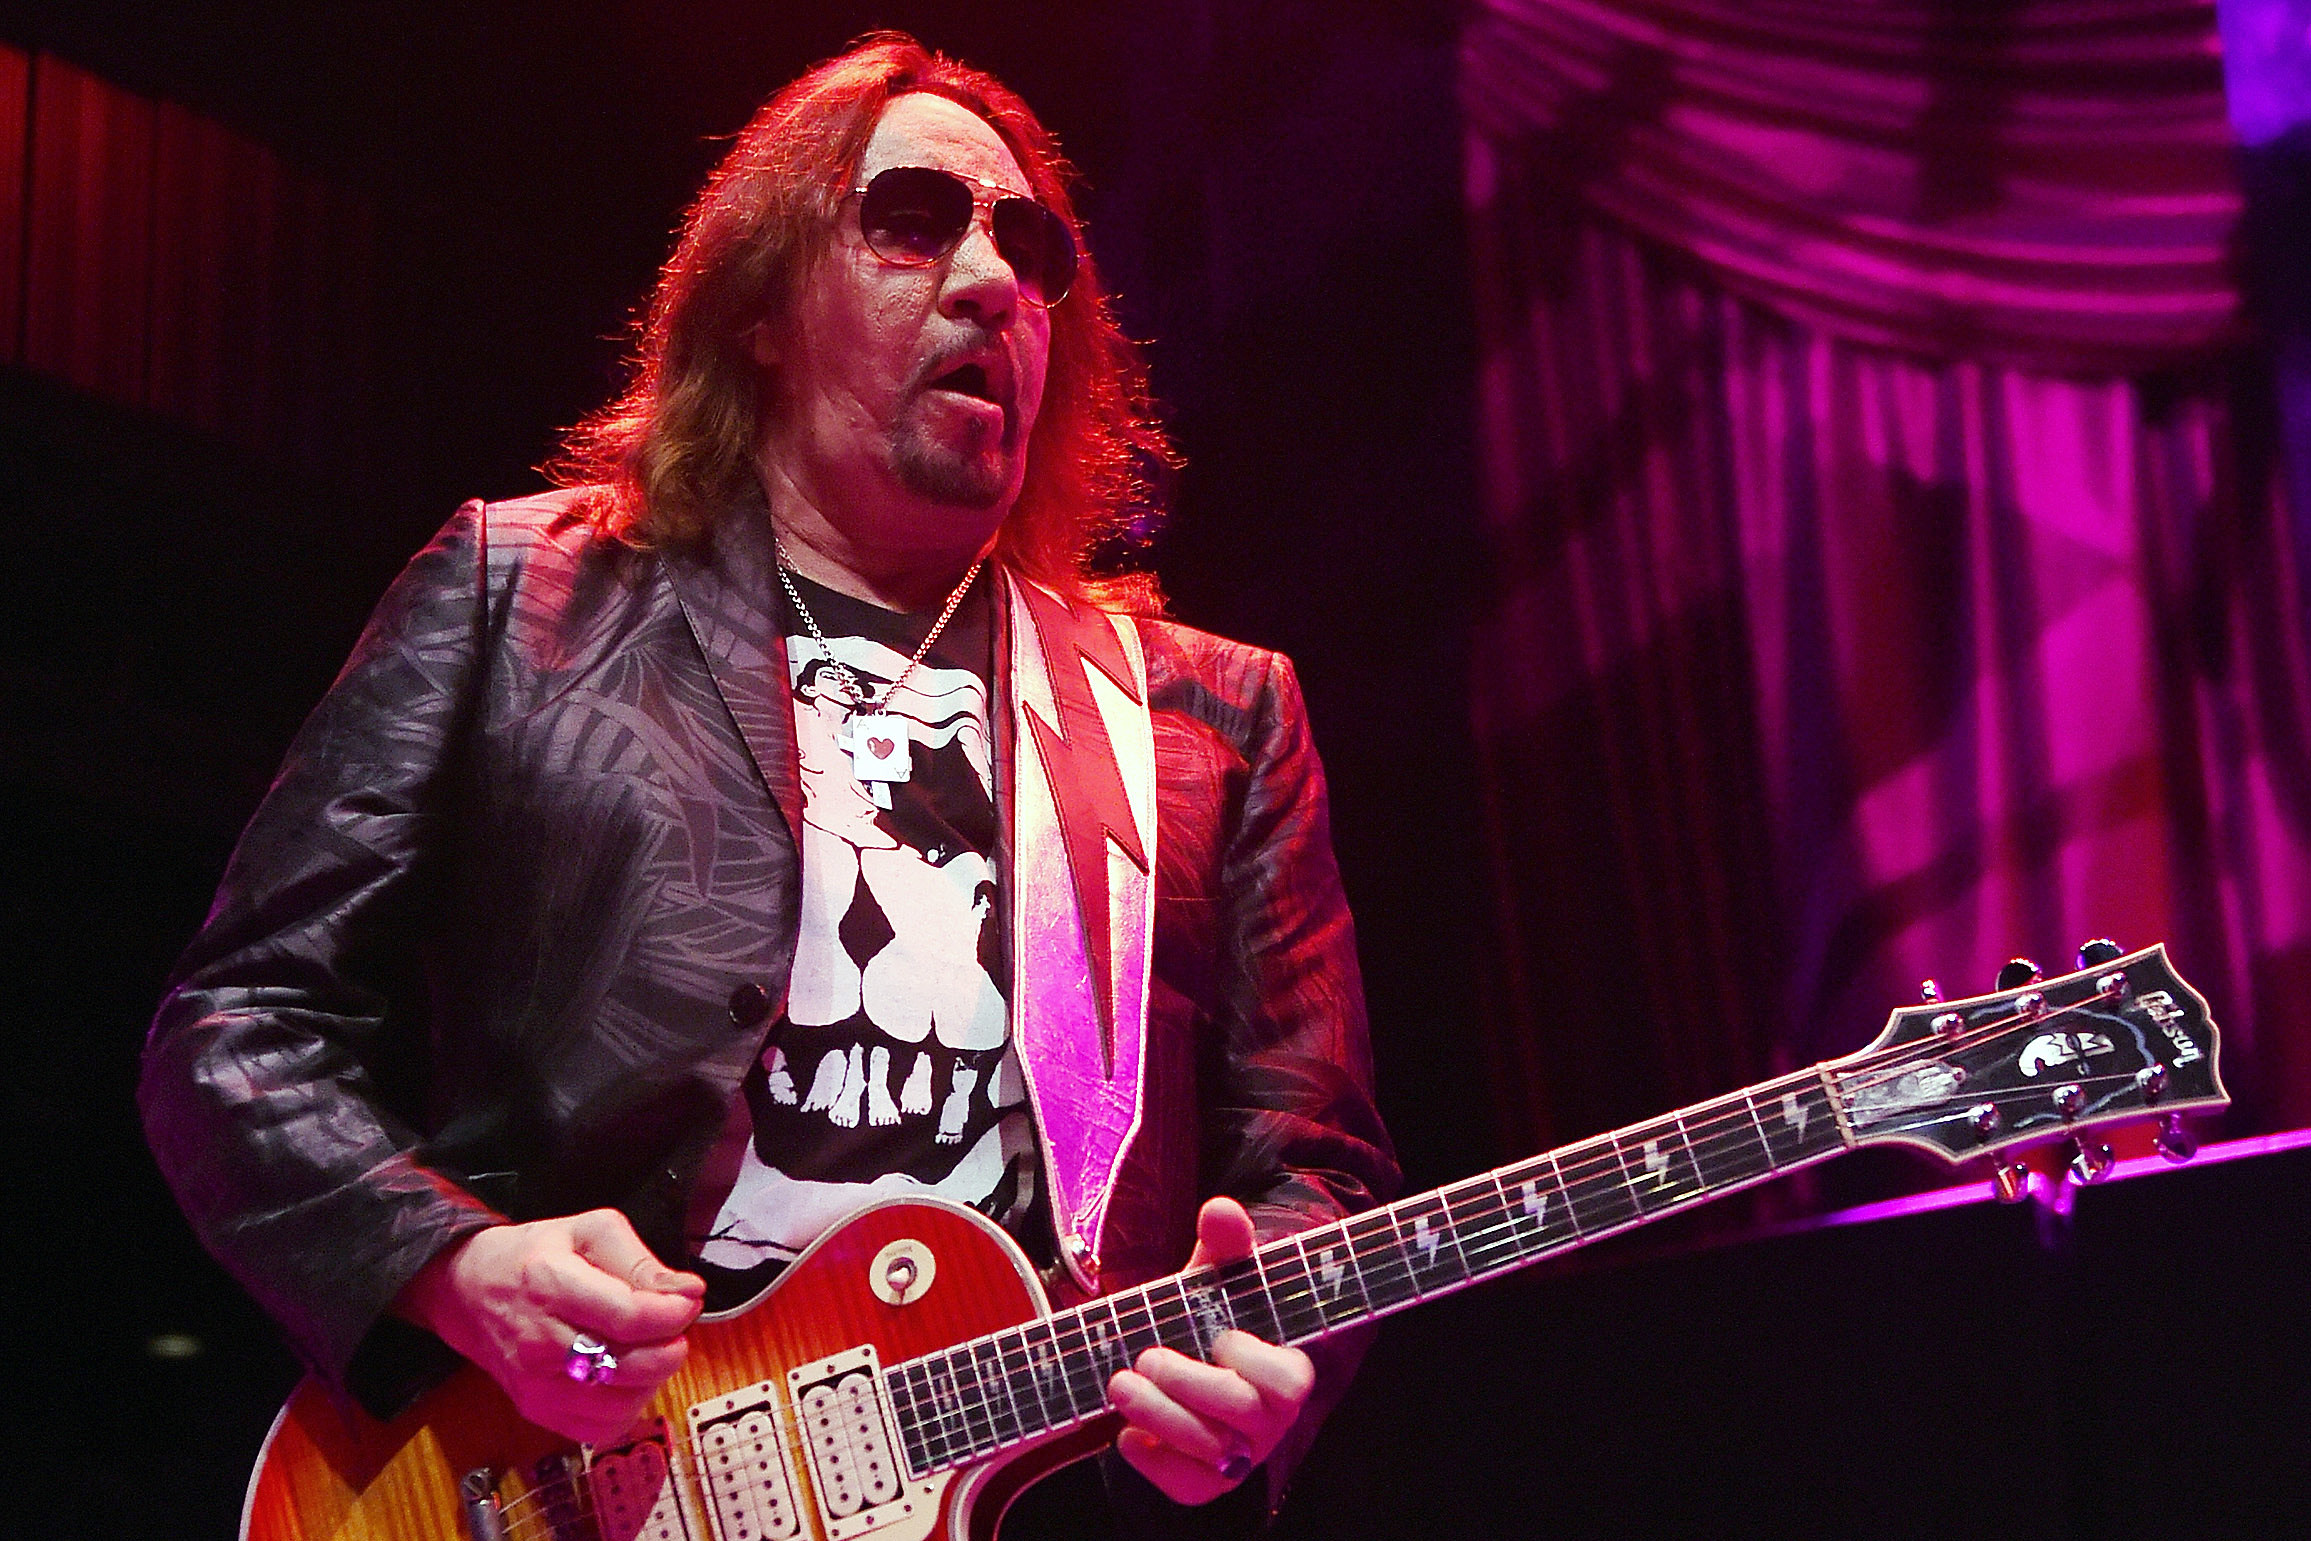 Degenerate' Ace Frehley Is 'Not Helping' in 'Avengers' Scene